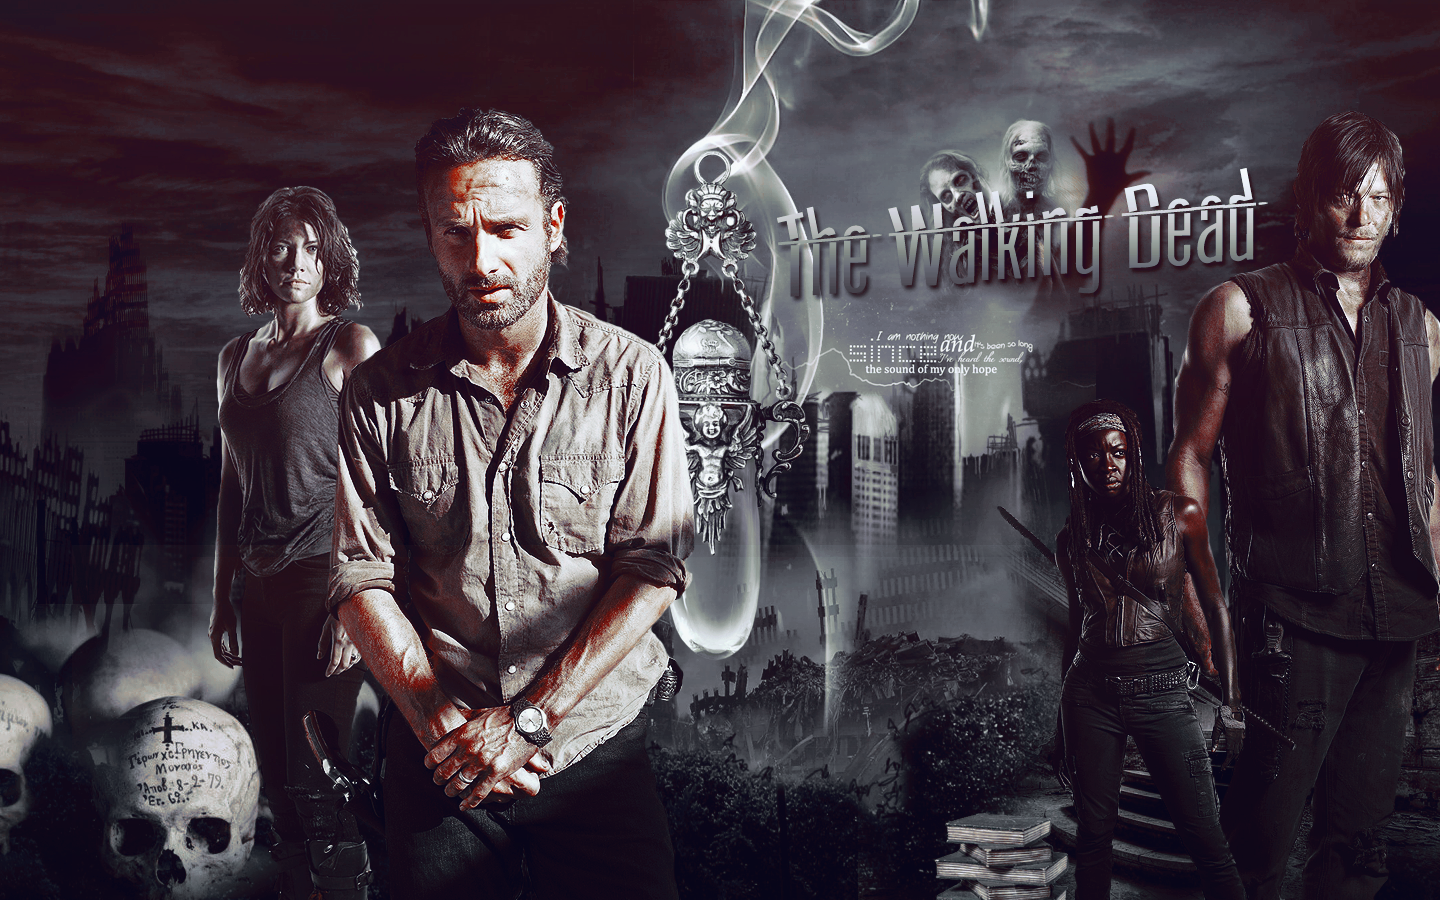 The Walking Dead Wallpaper By Bennixalice On Deviantart